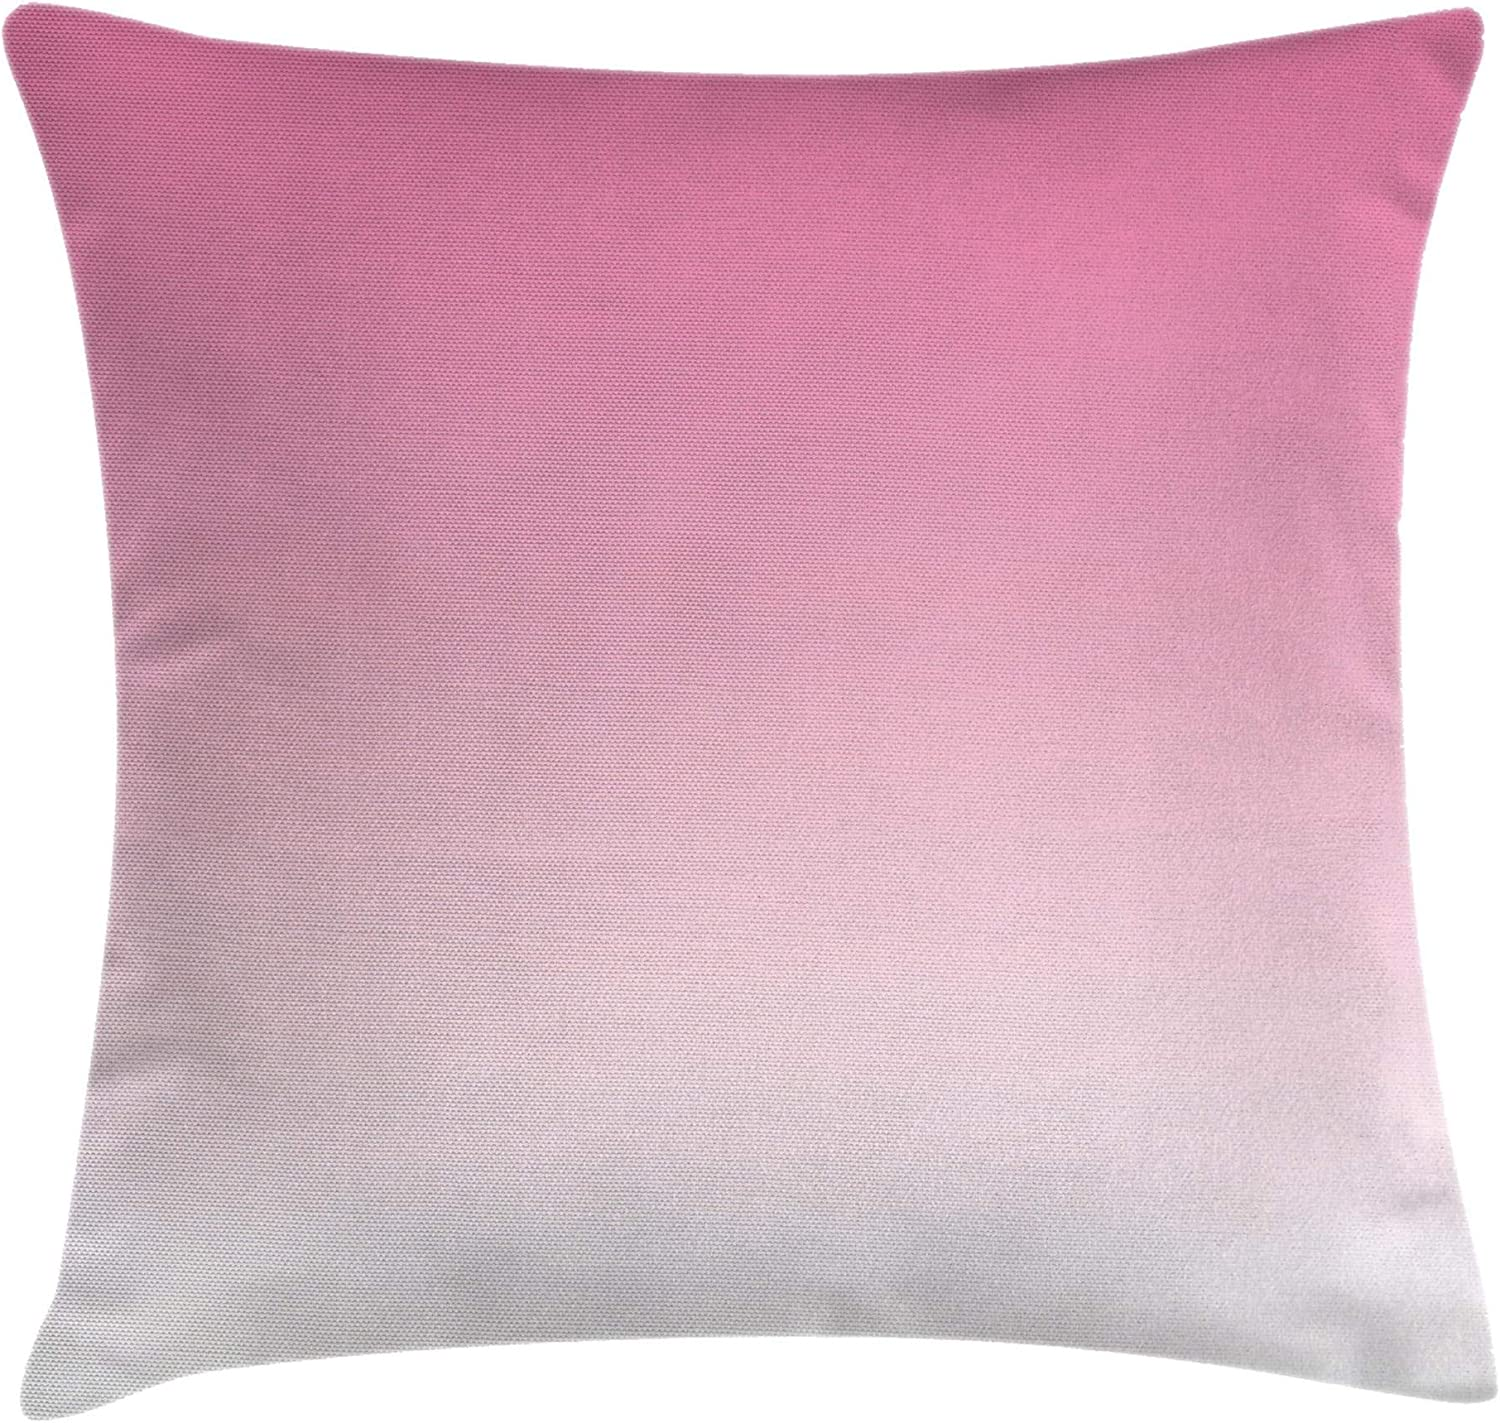 """Ambesonne Ombre Throw Pillow Cushion Cover, Dreamy Pale Pink Waterfall Cotton Candy Inspired Modern Digital Print Girls Artwork, Decorative Square Accent Pillow Case, 18"""" X 18"""", White Pink"""